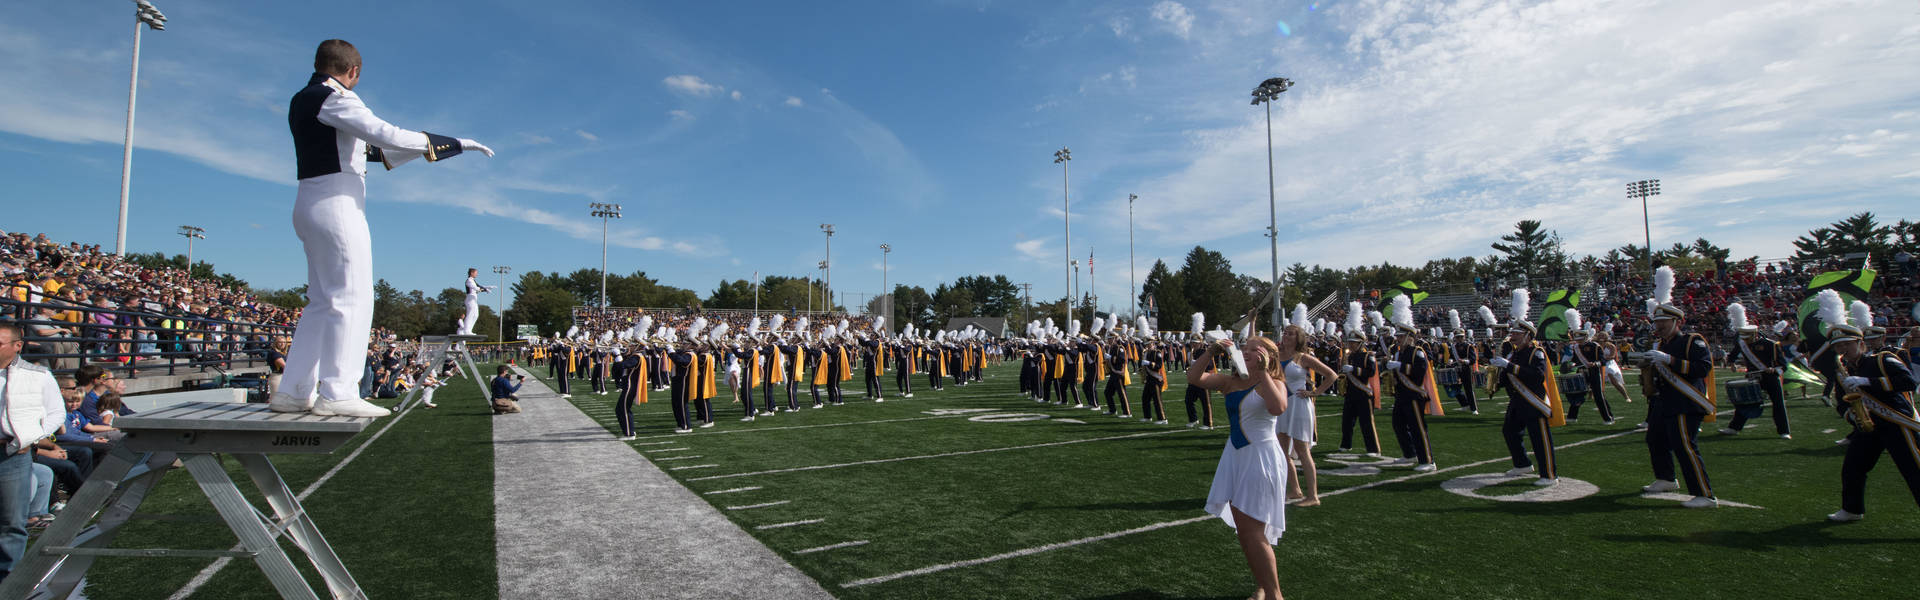 Homecoming Blugold Marching Band on the field